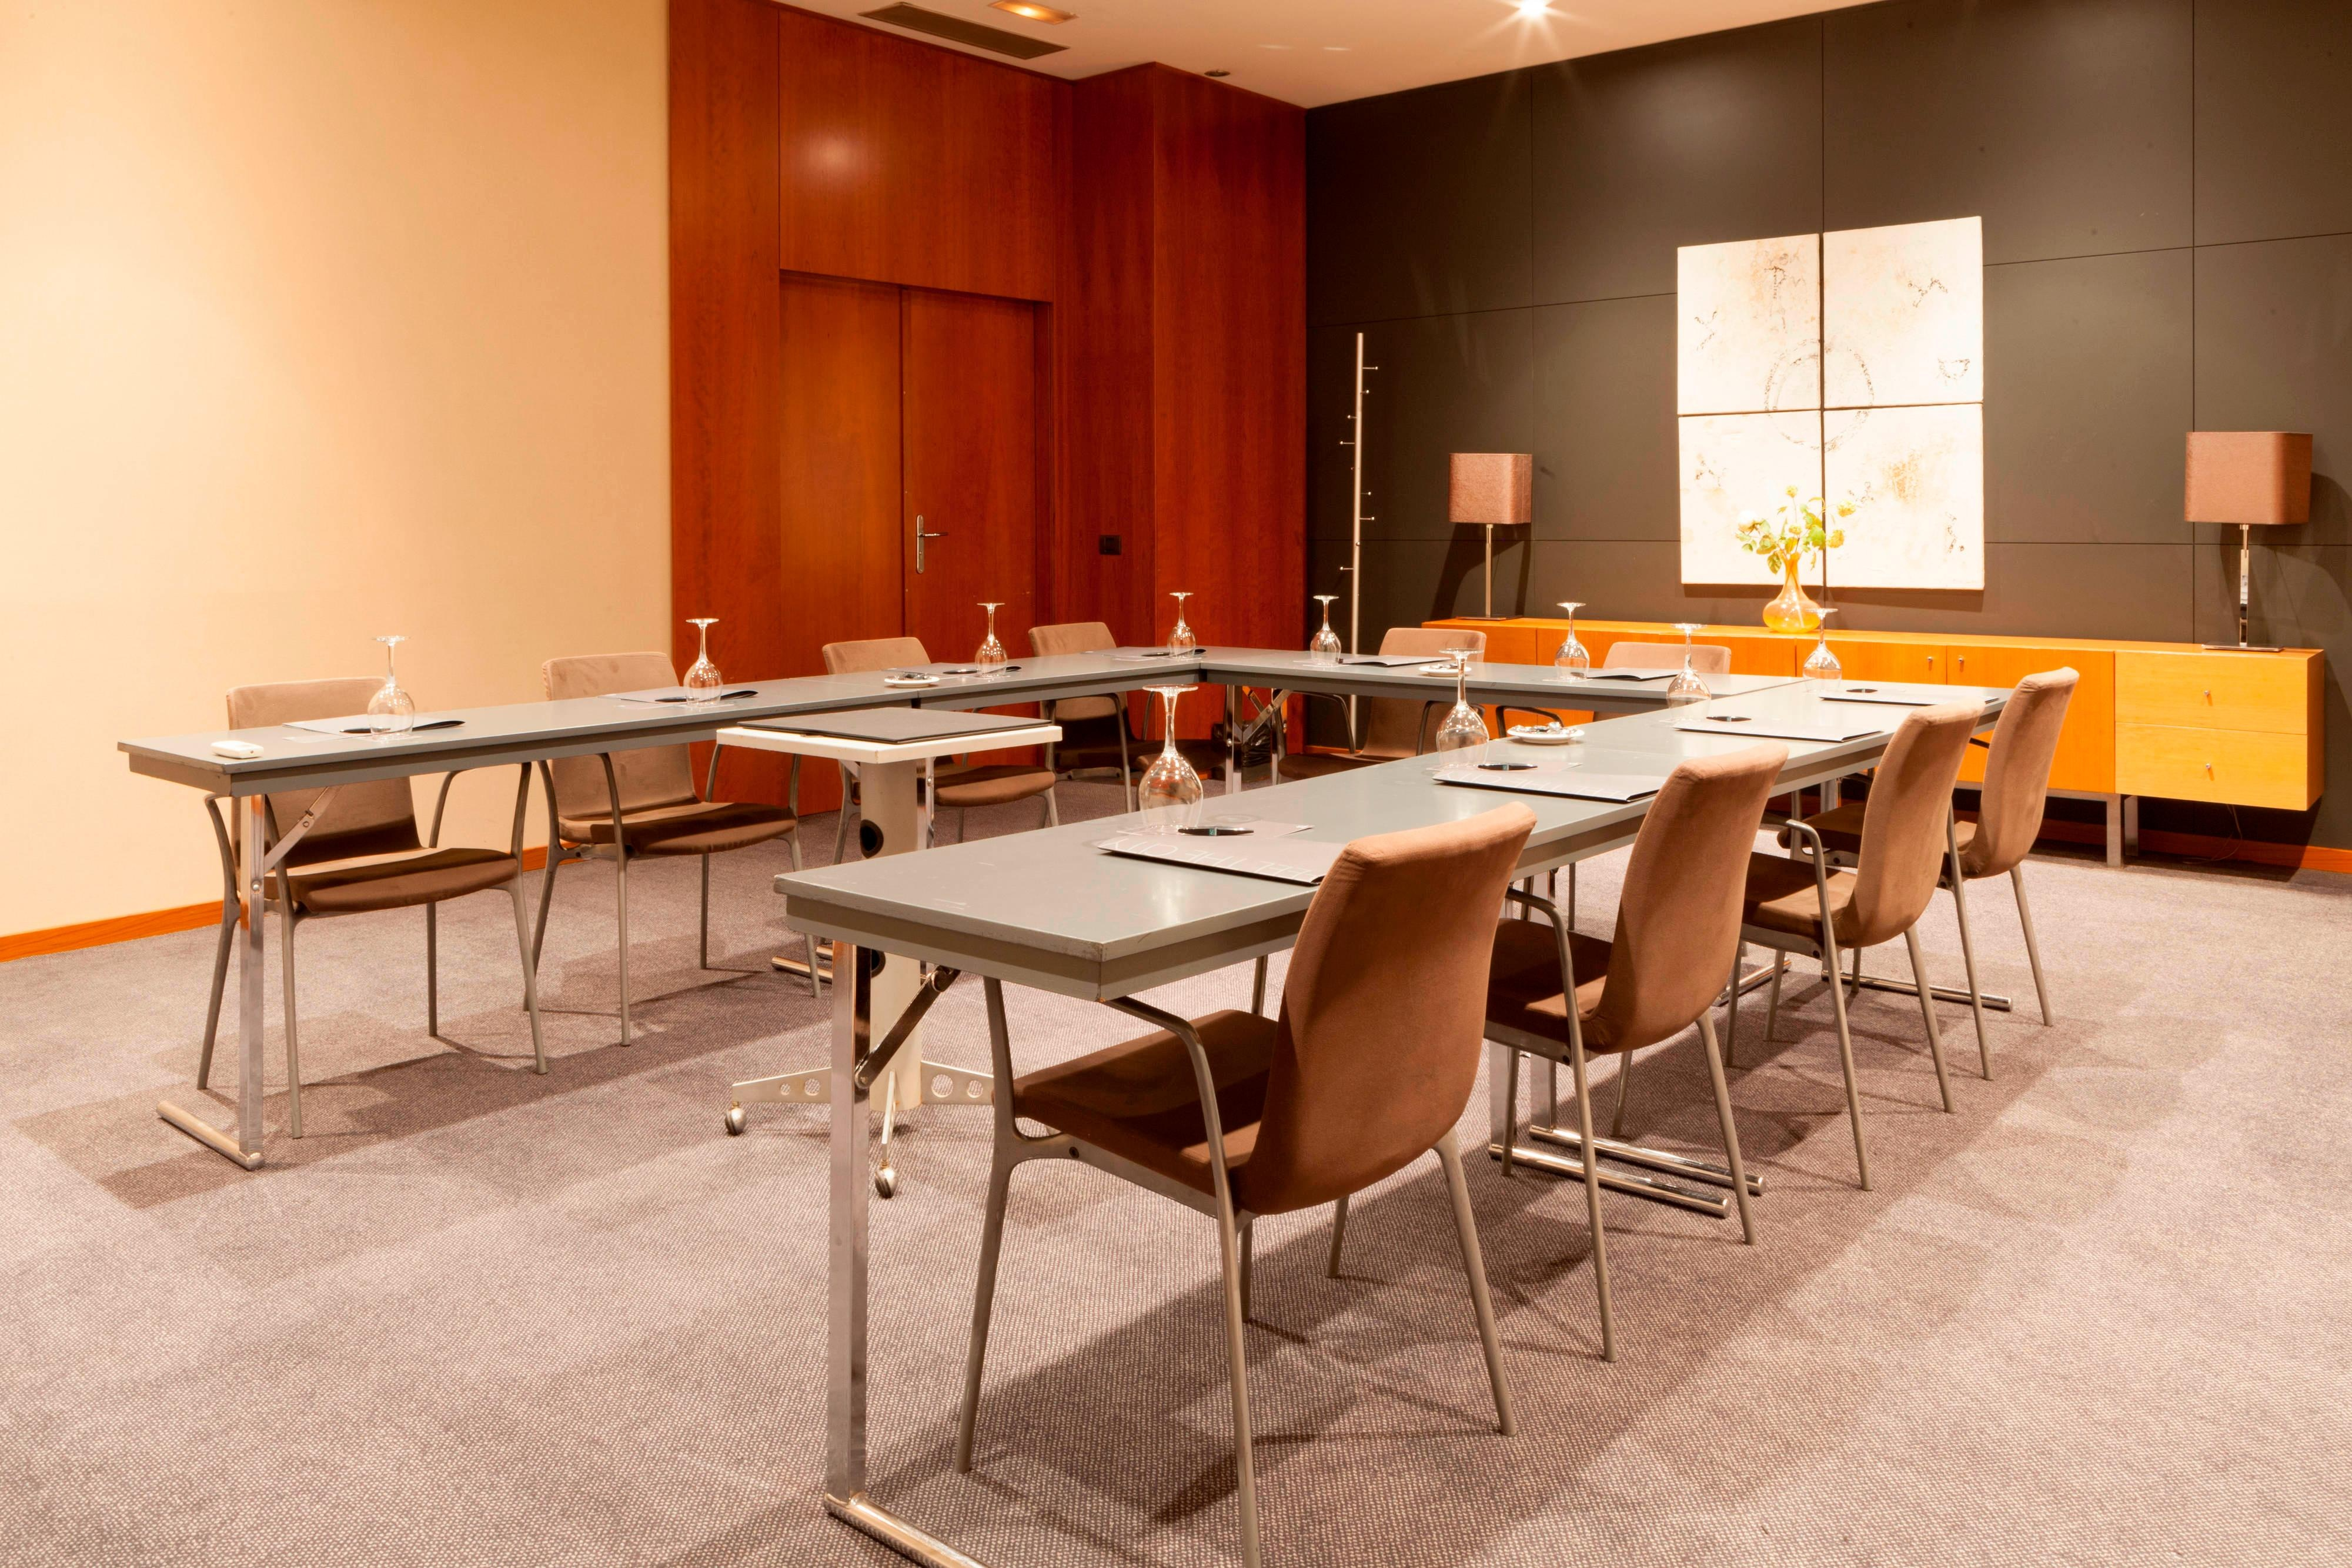 Consejo meeting room in seville hotel